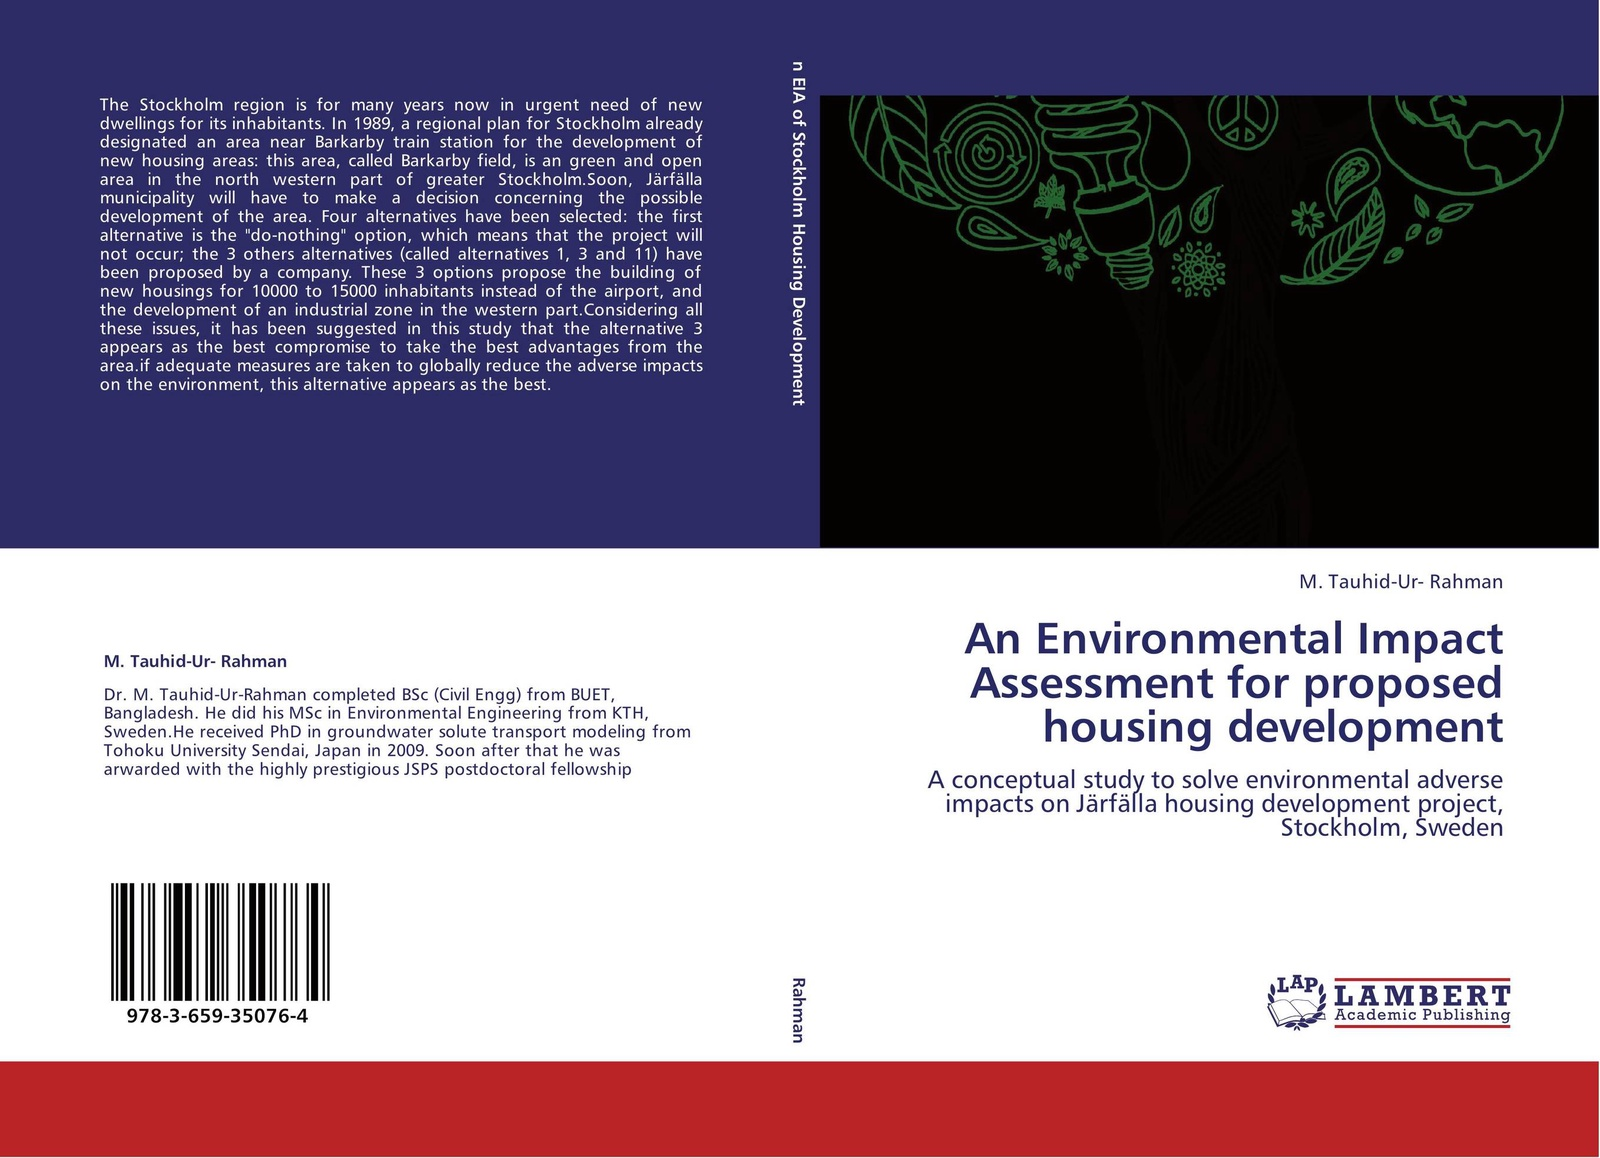 Фото - M. Tauhid-Ur- Rahman An Environmental Impact Assessment for proposed housing development m tauhid ur rahman an environmental impact assessment for proposed housing development